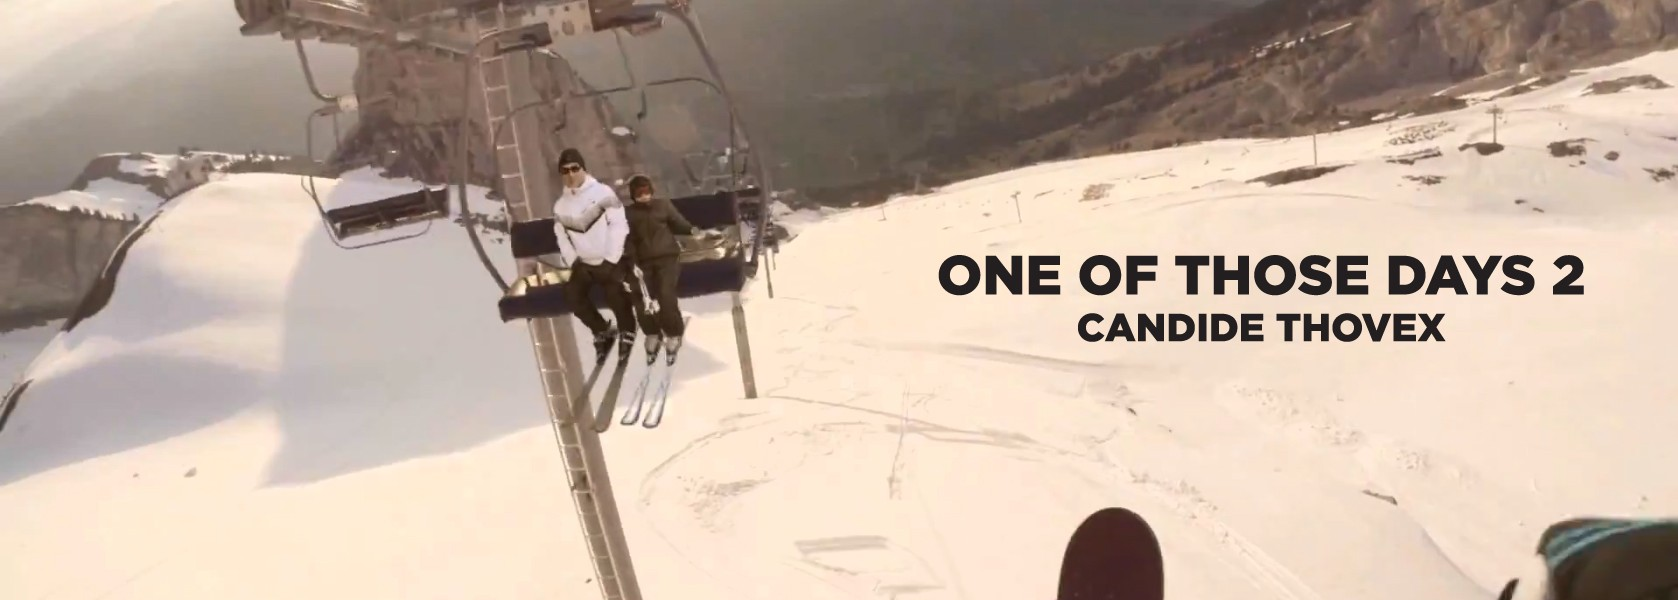 Candide Thovex jumping on skis over a chairlift in One Of Those Days 2